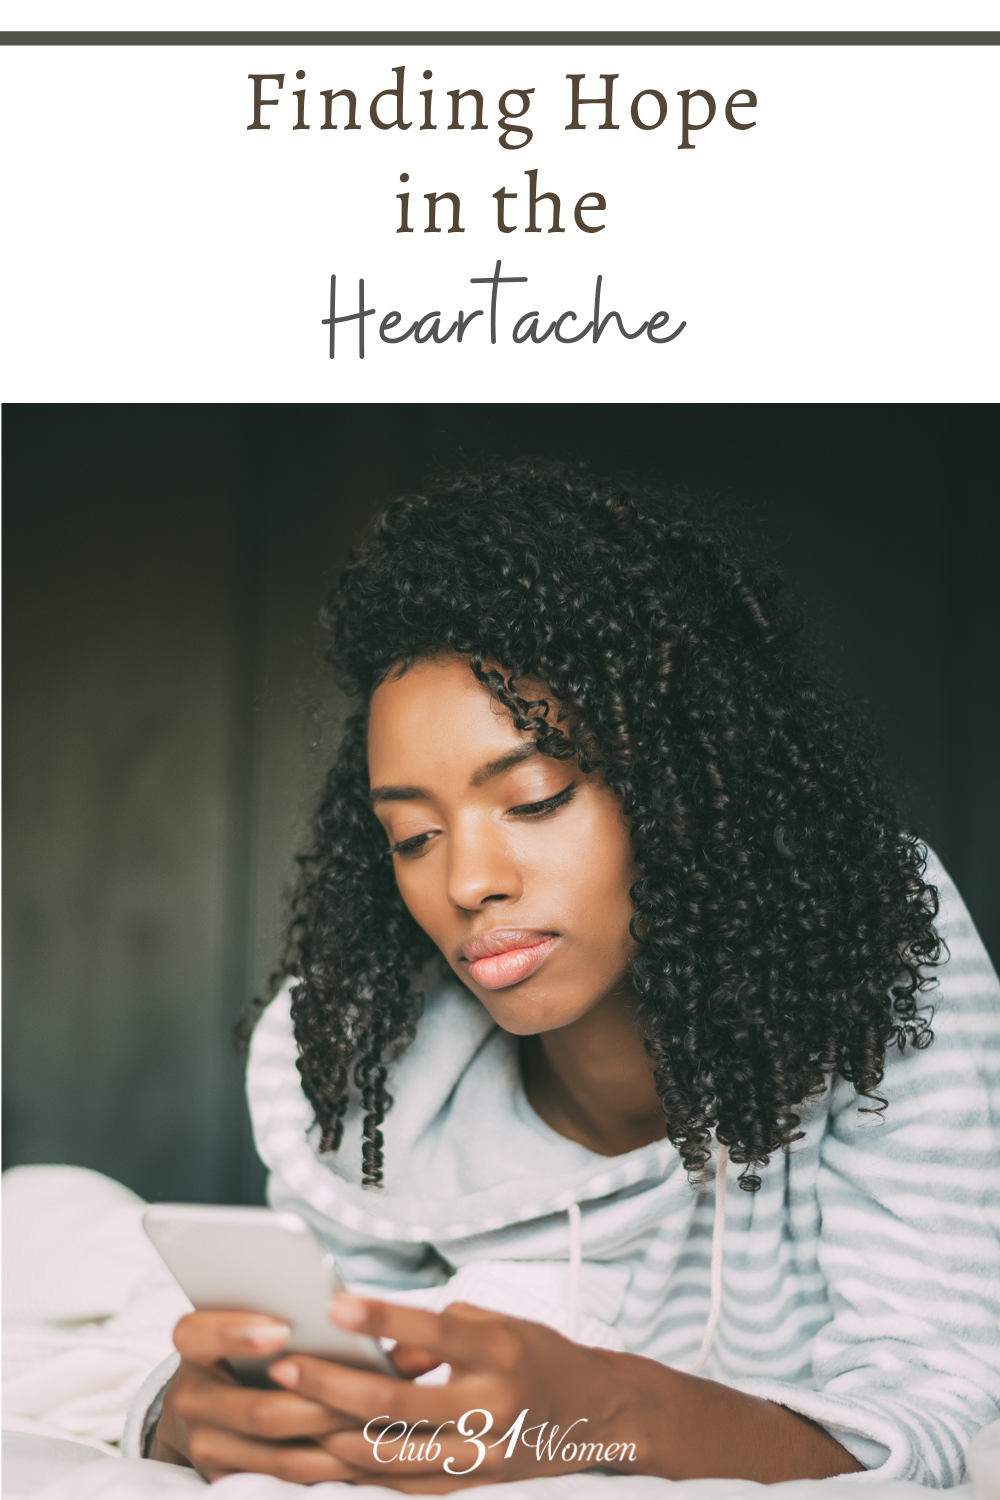 Have you ever struggled to pull yourself out of a rut when heartache seeks to just devour you? There is hope. via @Club31Women